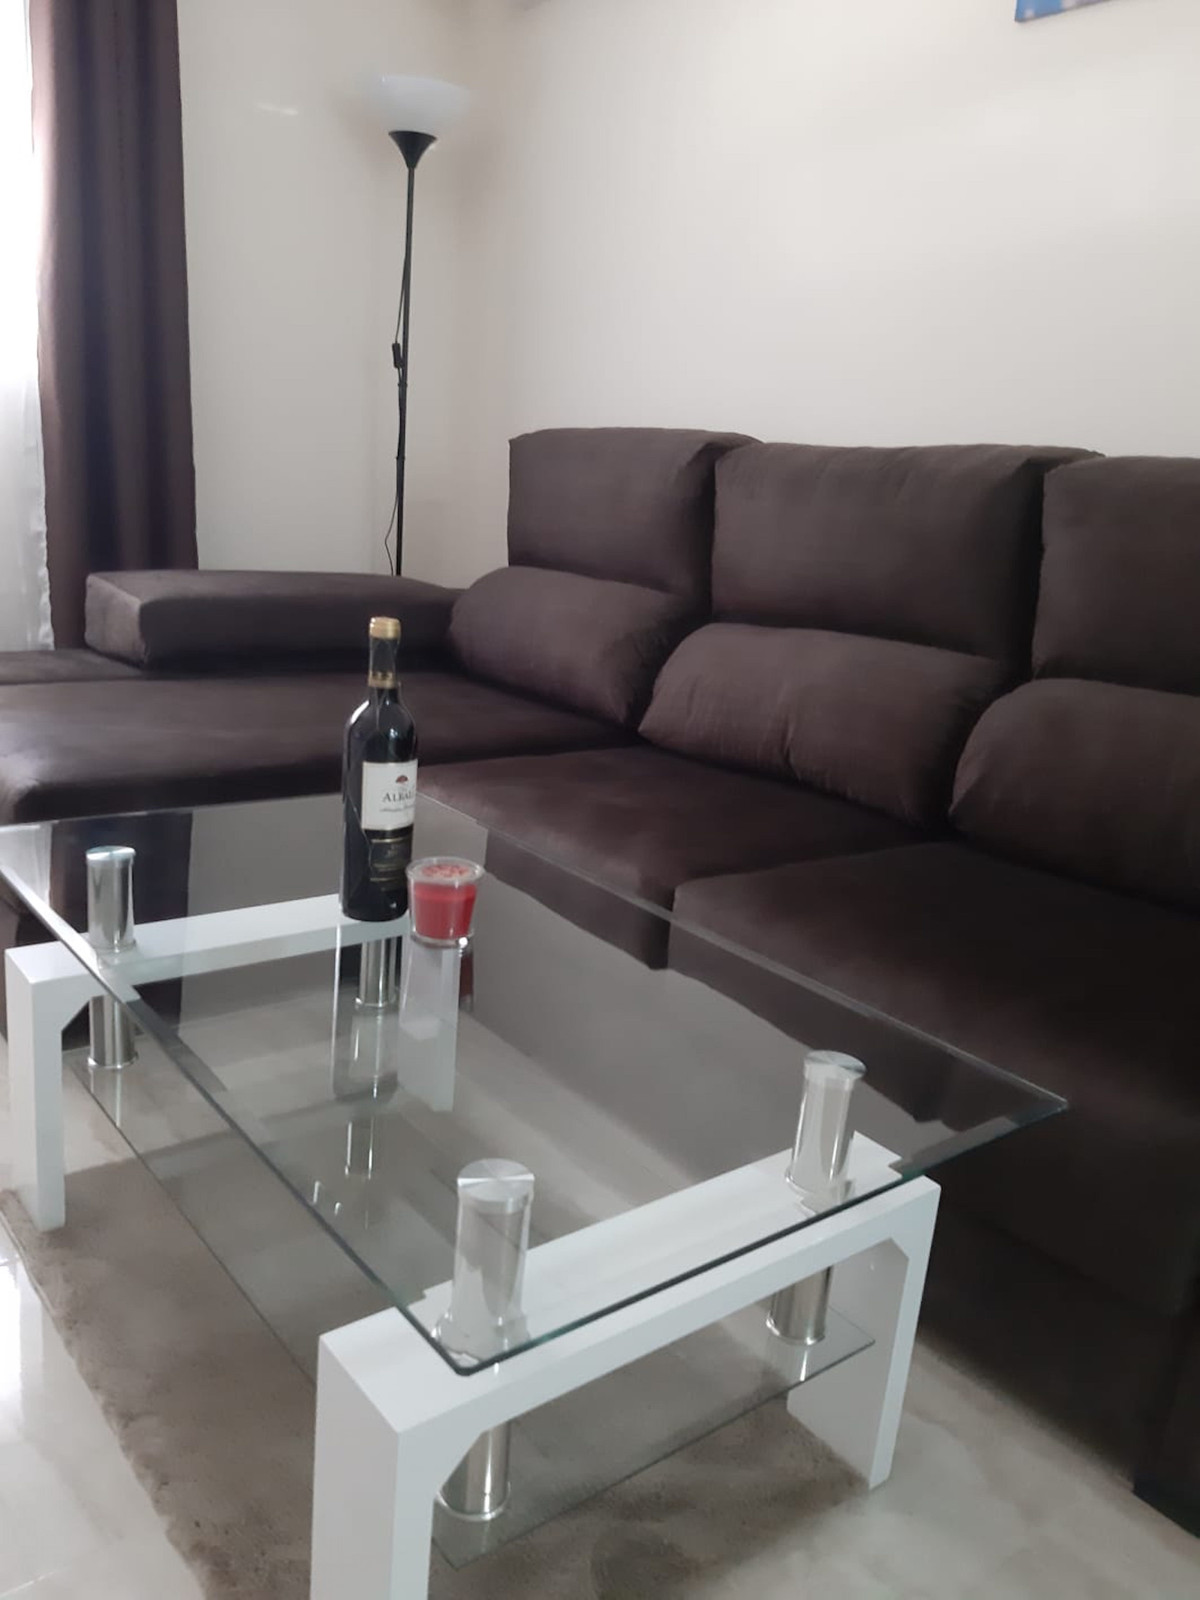 Refurbished apartment for sale in Puerta Blanca, Almudena, Malaga with an approximate area of 85m2. ,Spain